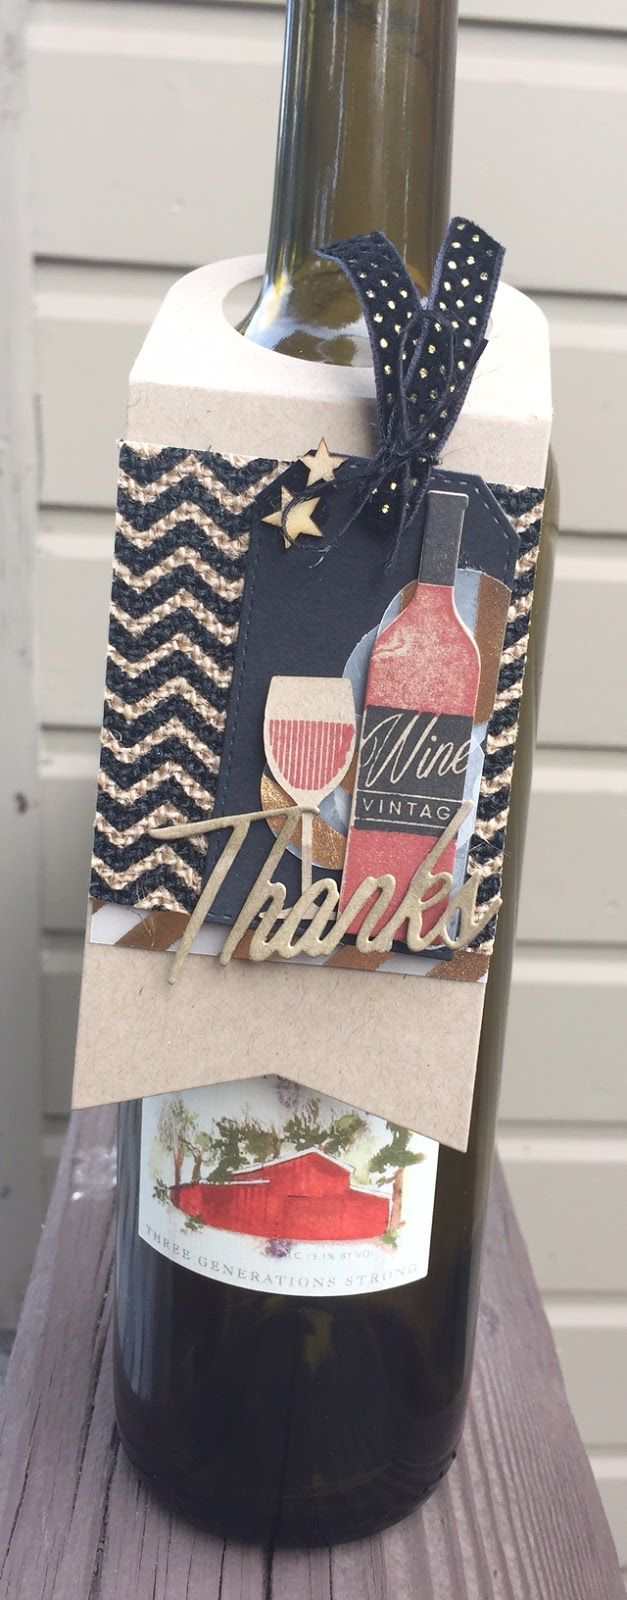 Homemade Cards by Erin: thanks wine tag